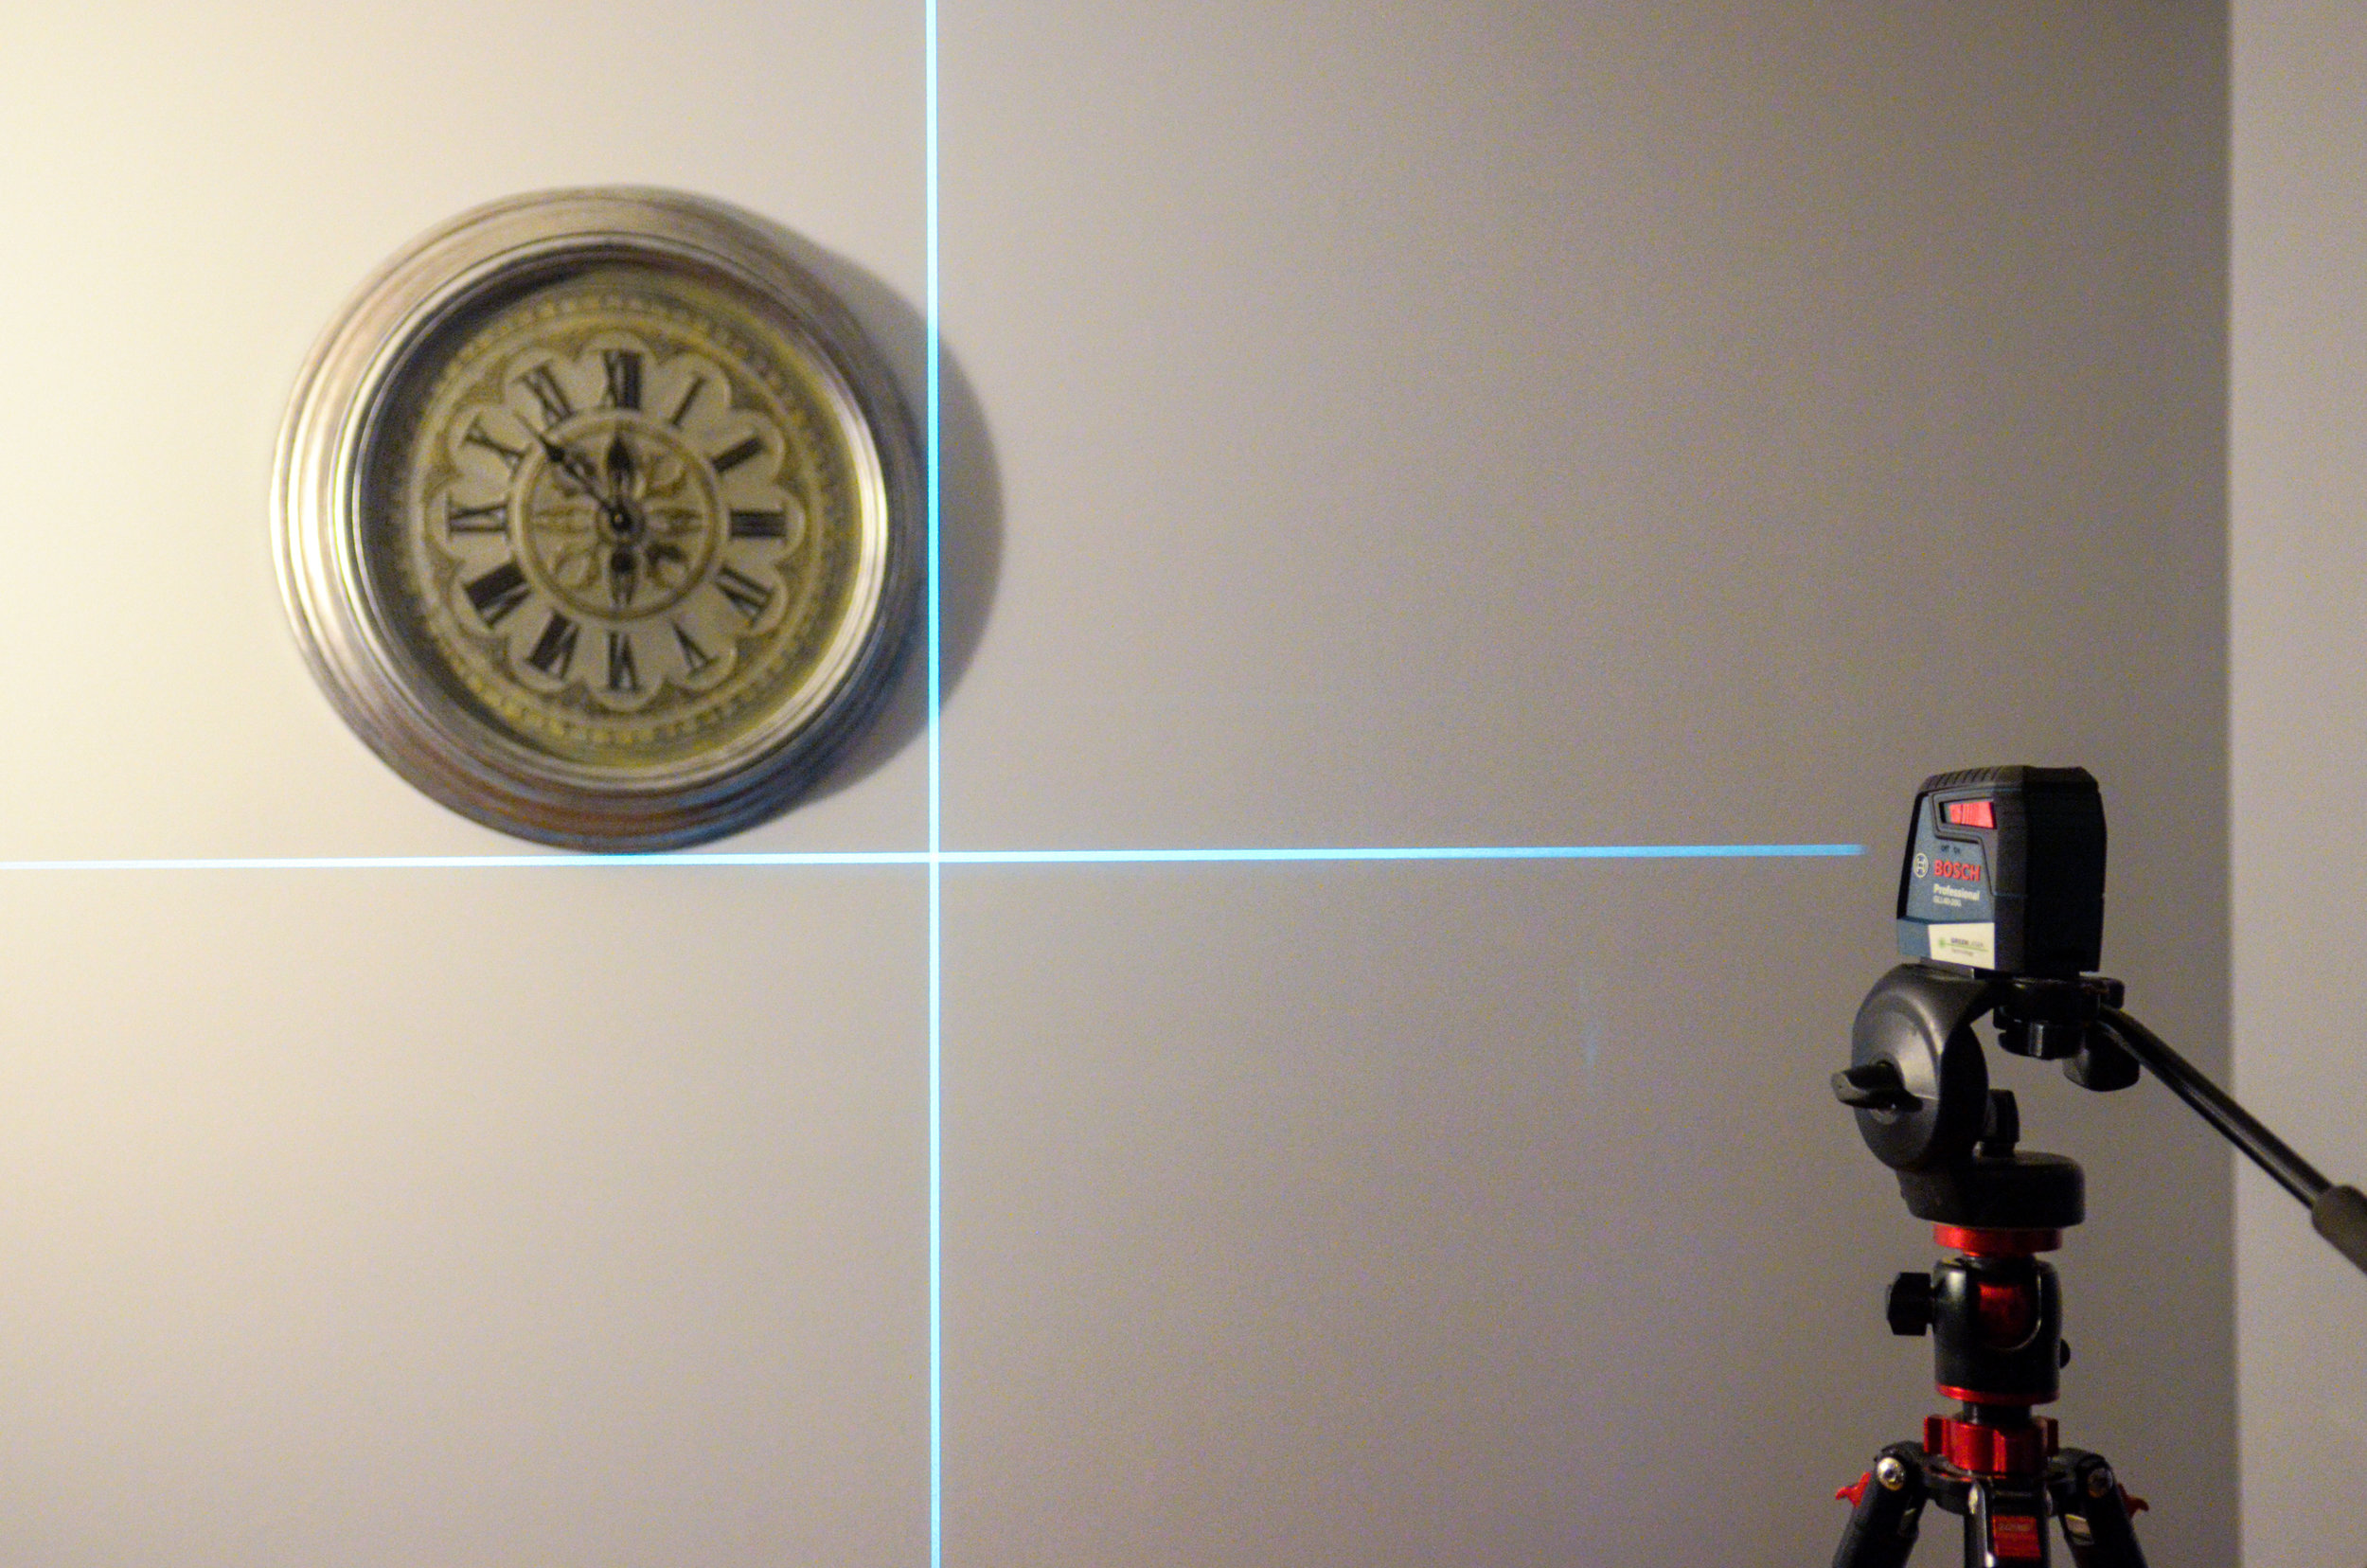 The Bosch 40-ft. cross-line level projected on a light blue wall.